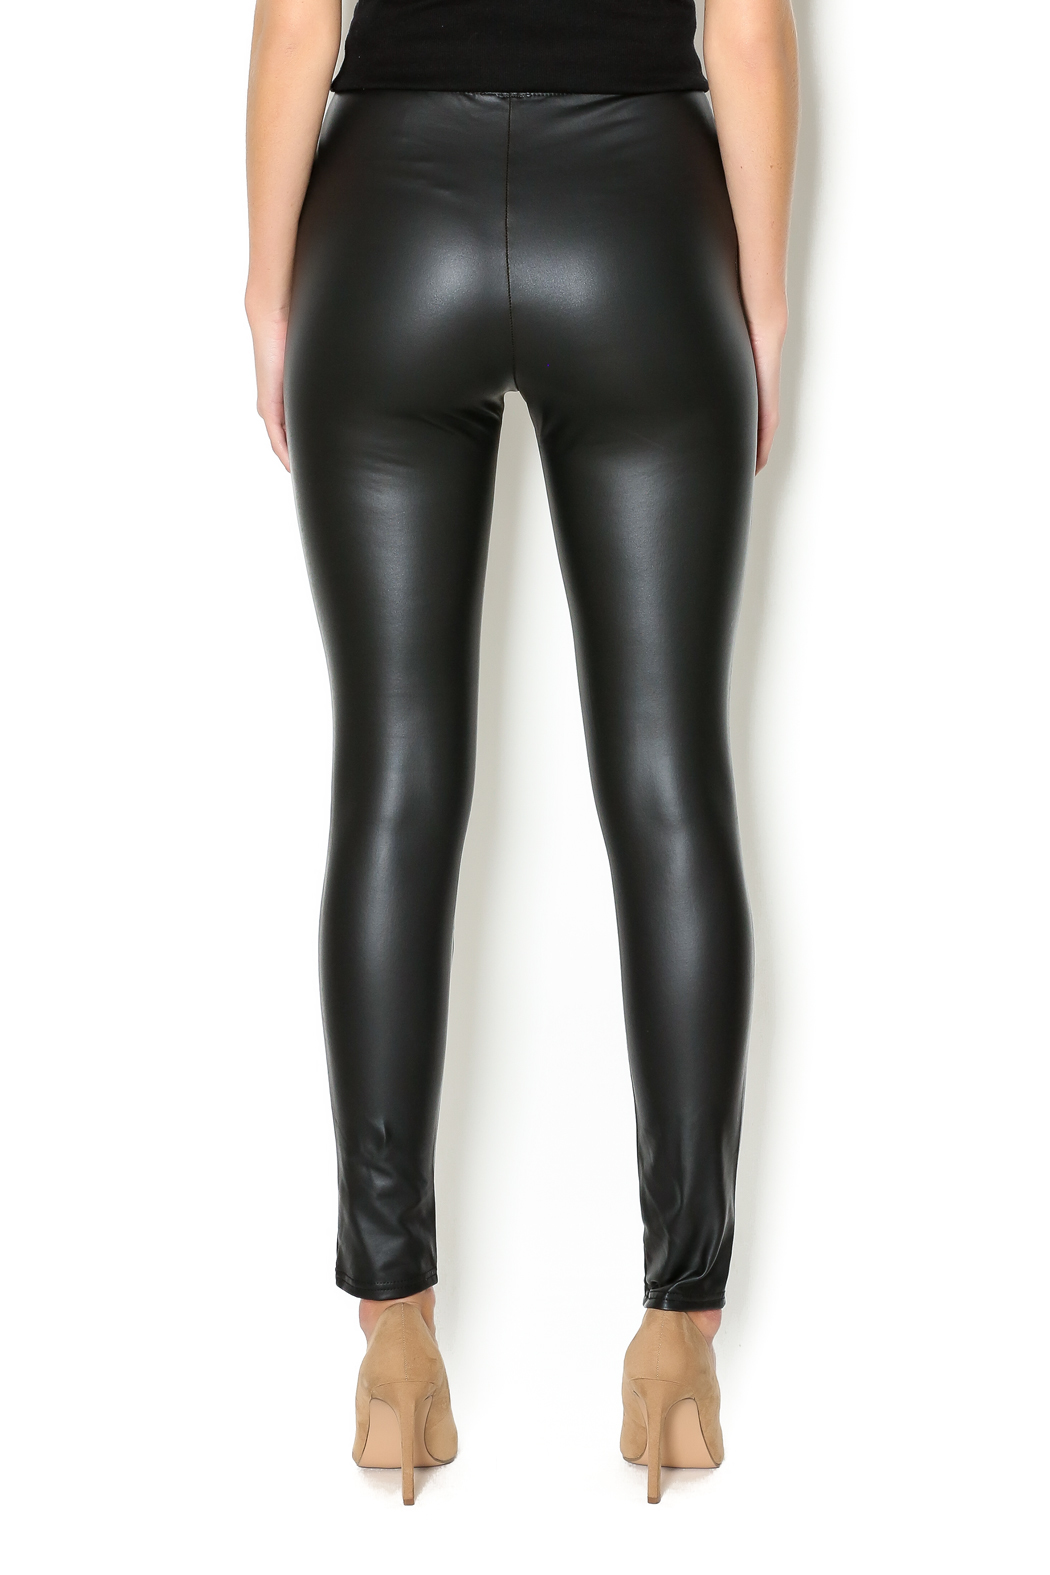 RD Style Faux Leather Legging From Michigan By Sparrow